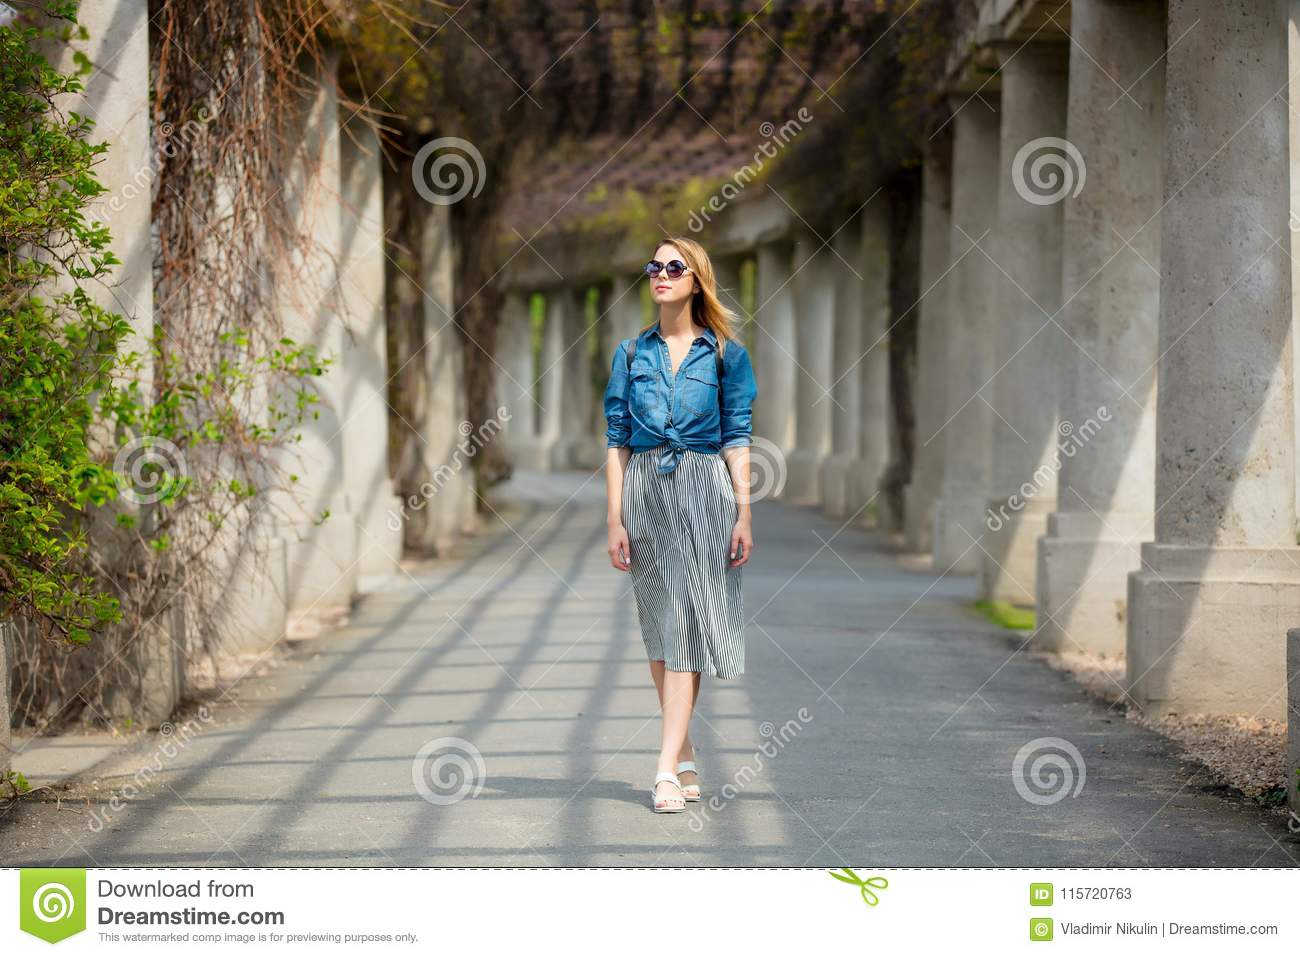 Girl Walking On Alley With Arches And Columns Stock Image ...